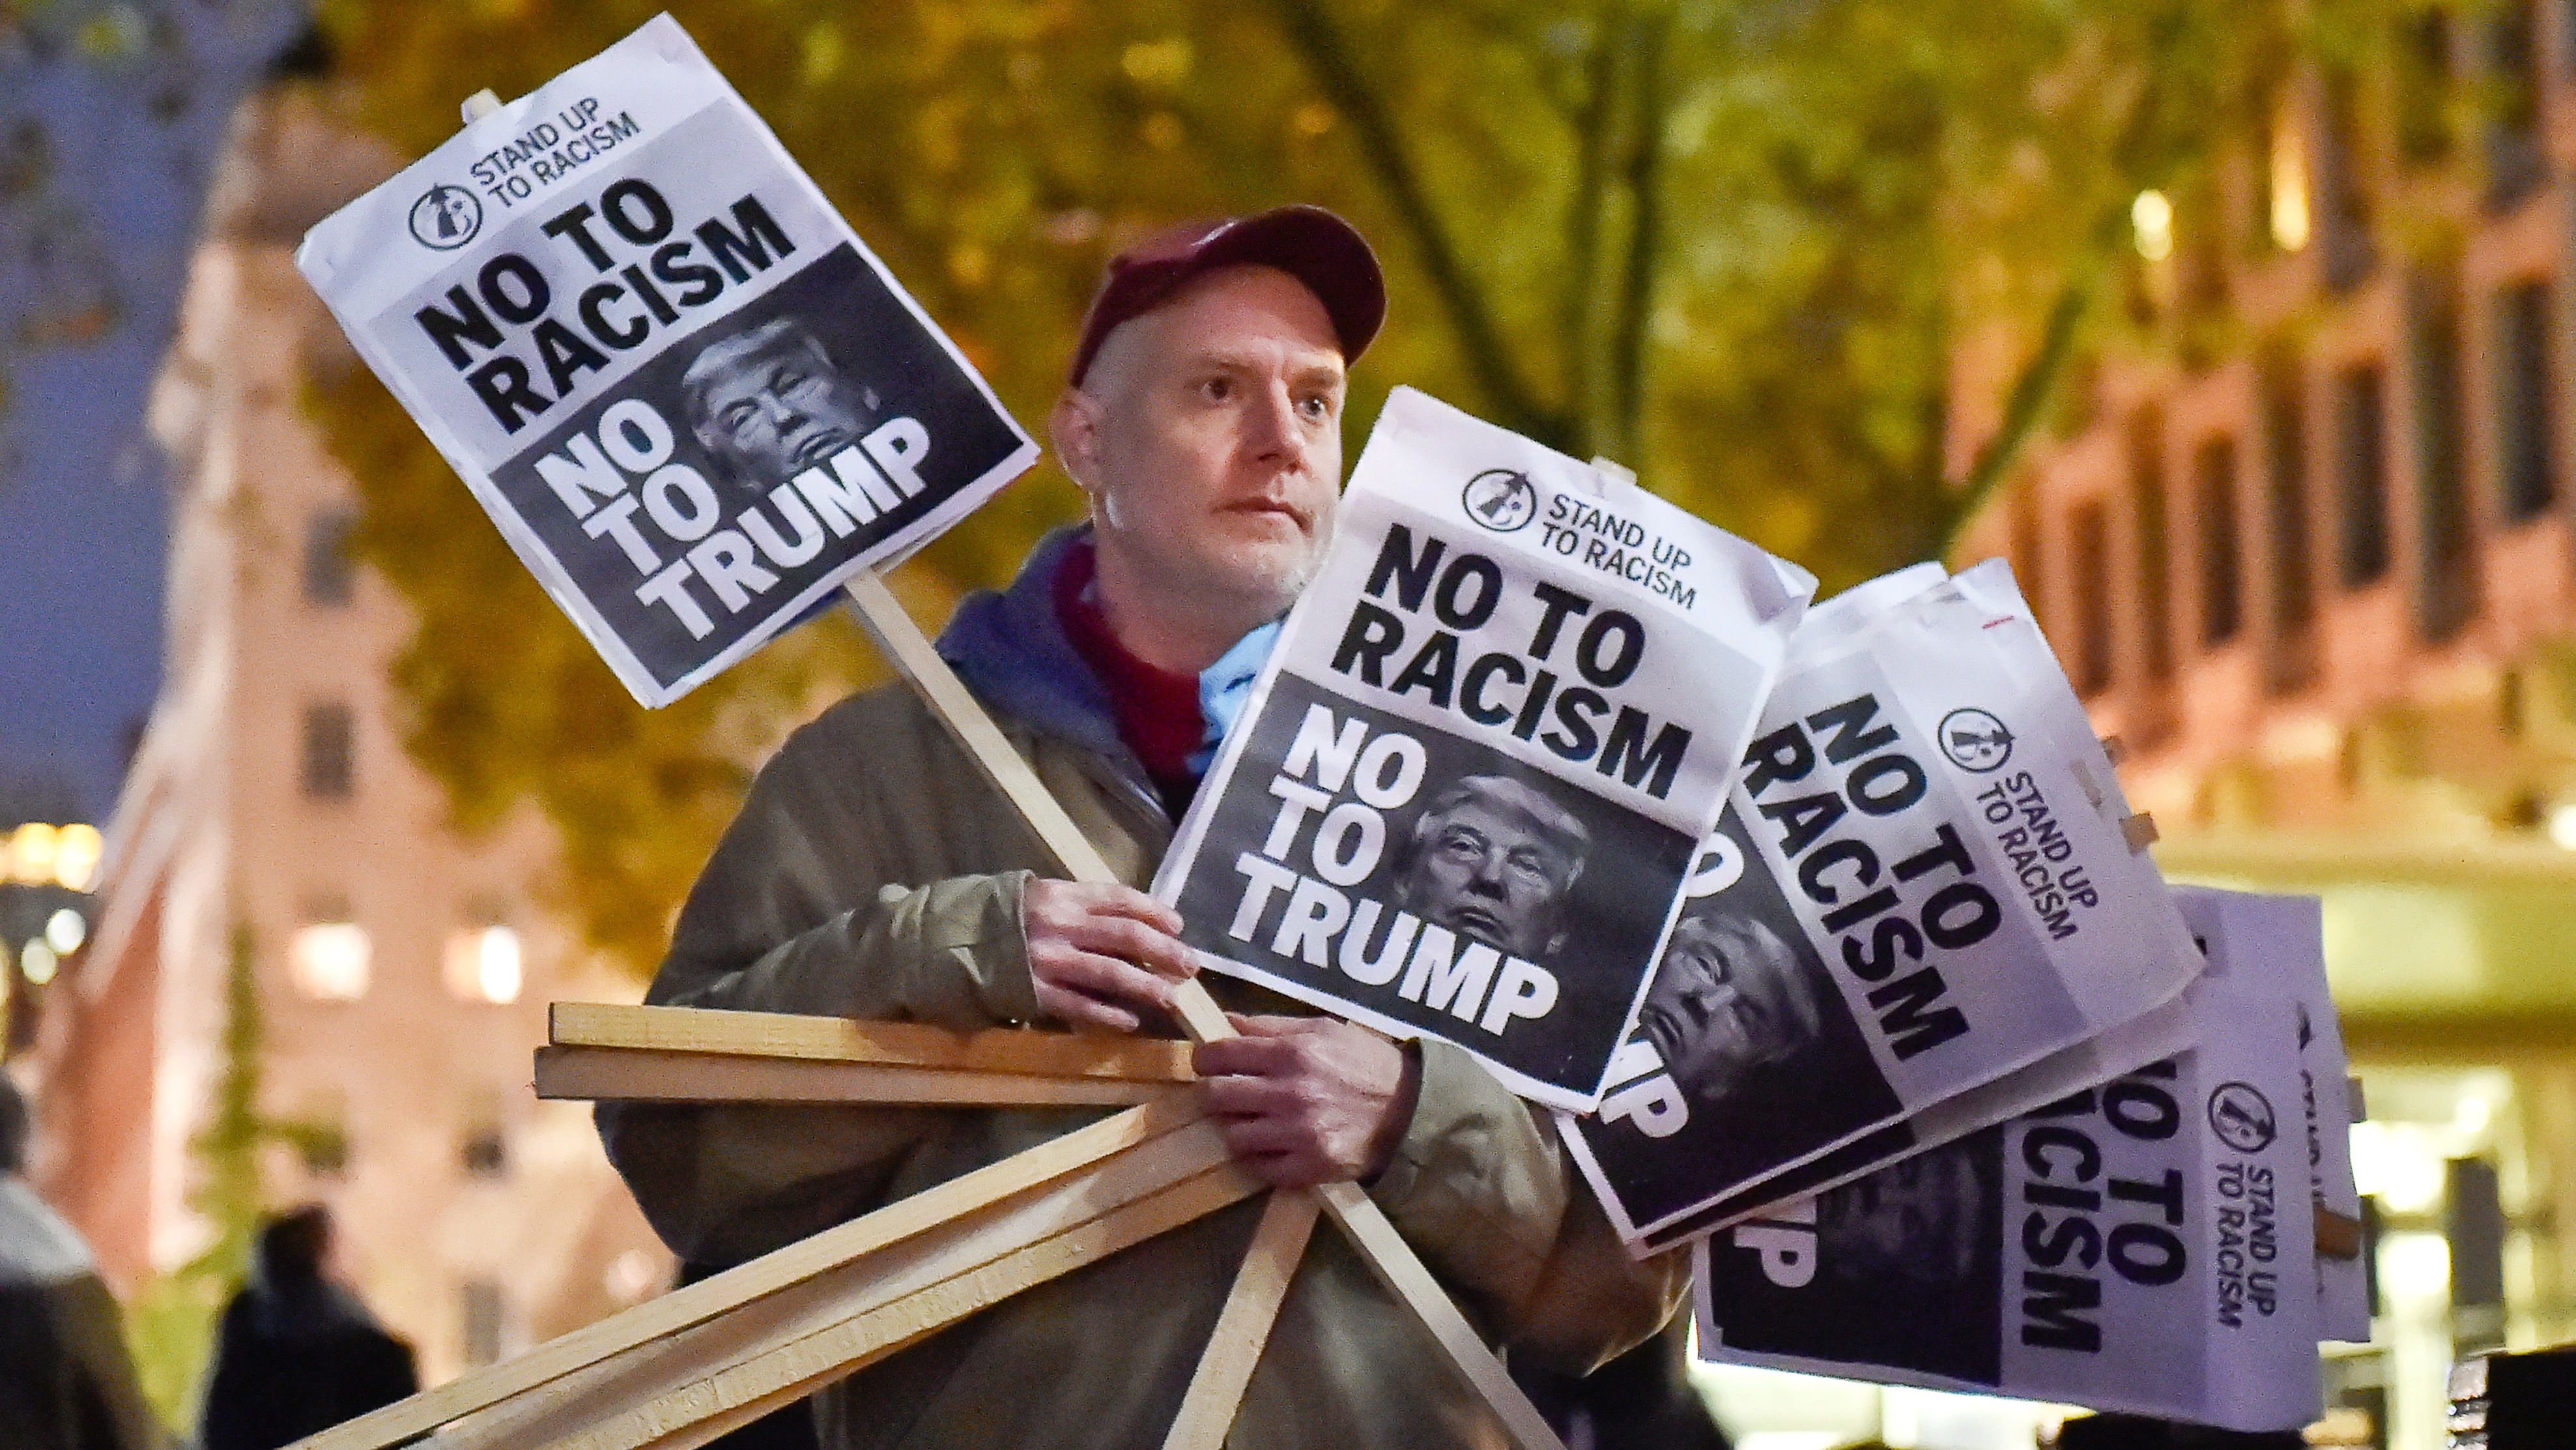 A man holds placards at an anti-racism protest against U.S. President-elect Donald Trump outside of the U.S Embassy in London, Britain, November 9, 2016. REUTERS/Hannah McKay - RTX2SW46